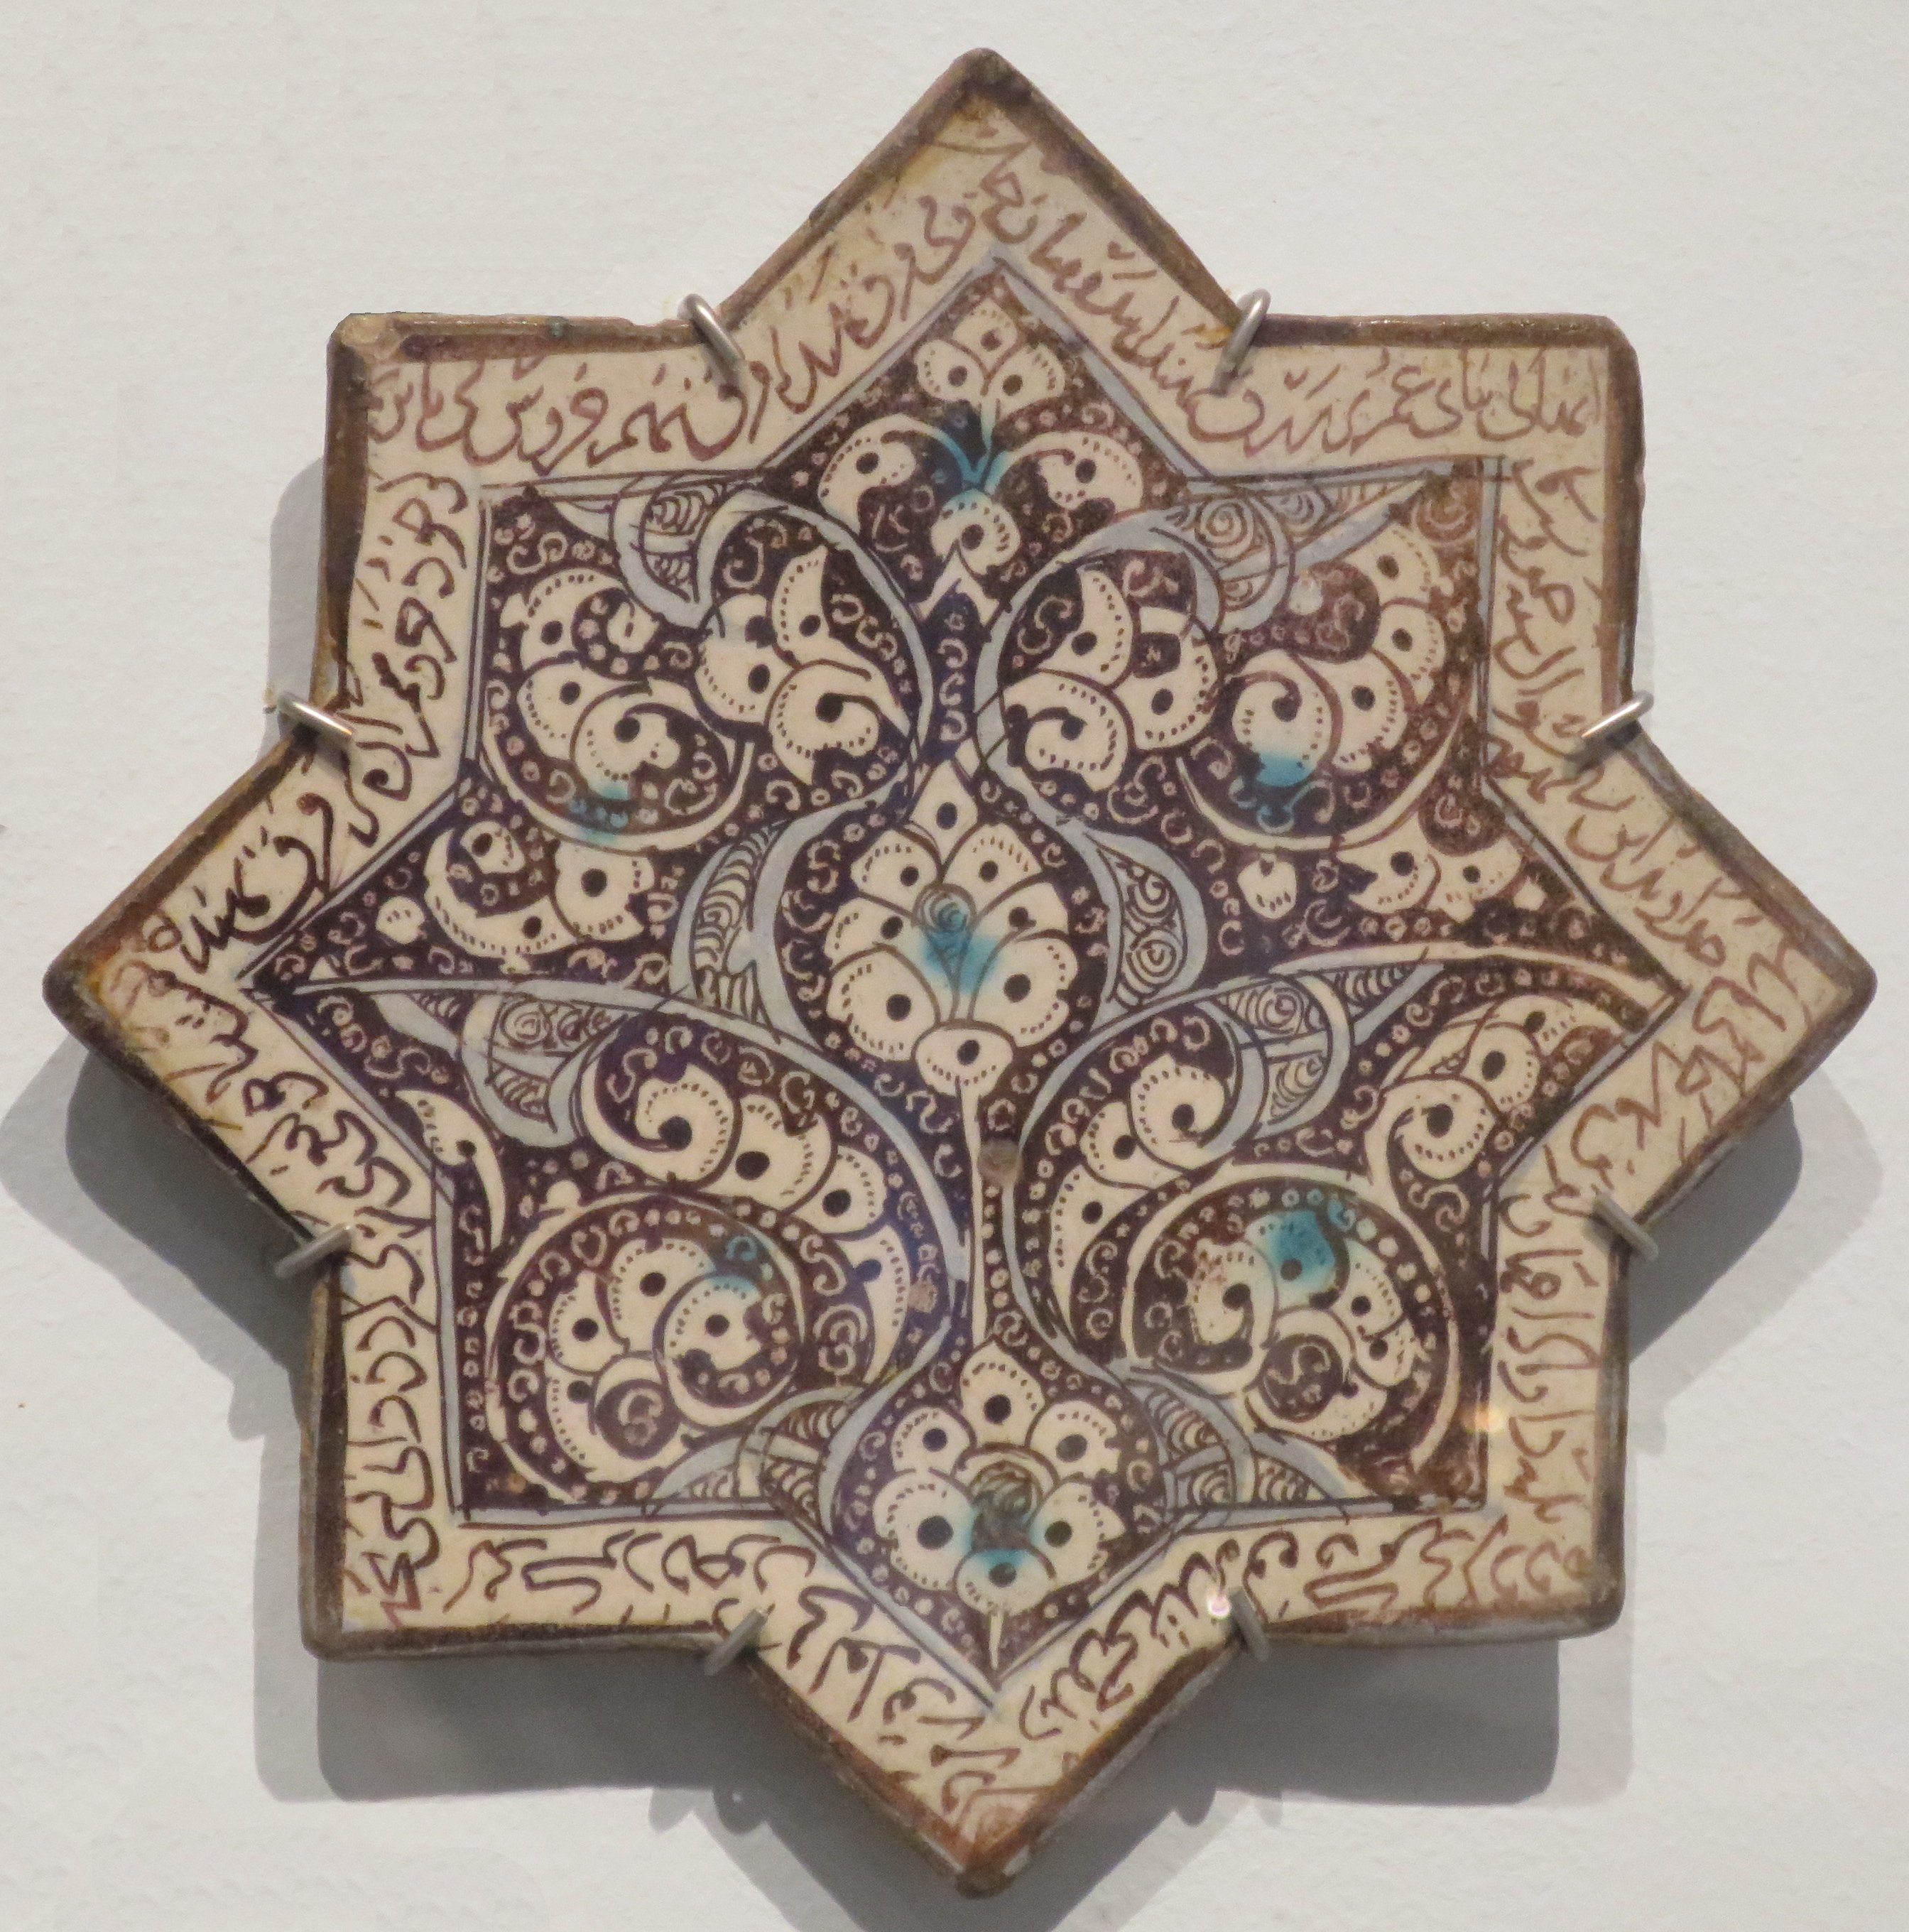 File:Star tile from Iran, Ilkhanid period, Honolulu Museum